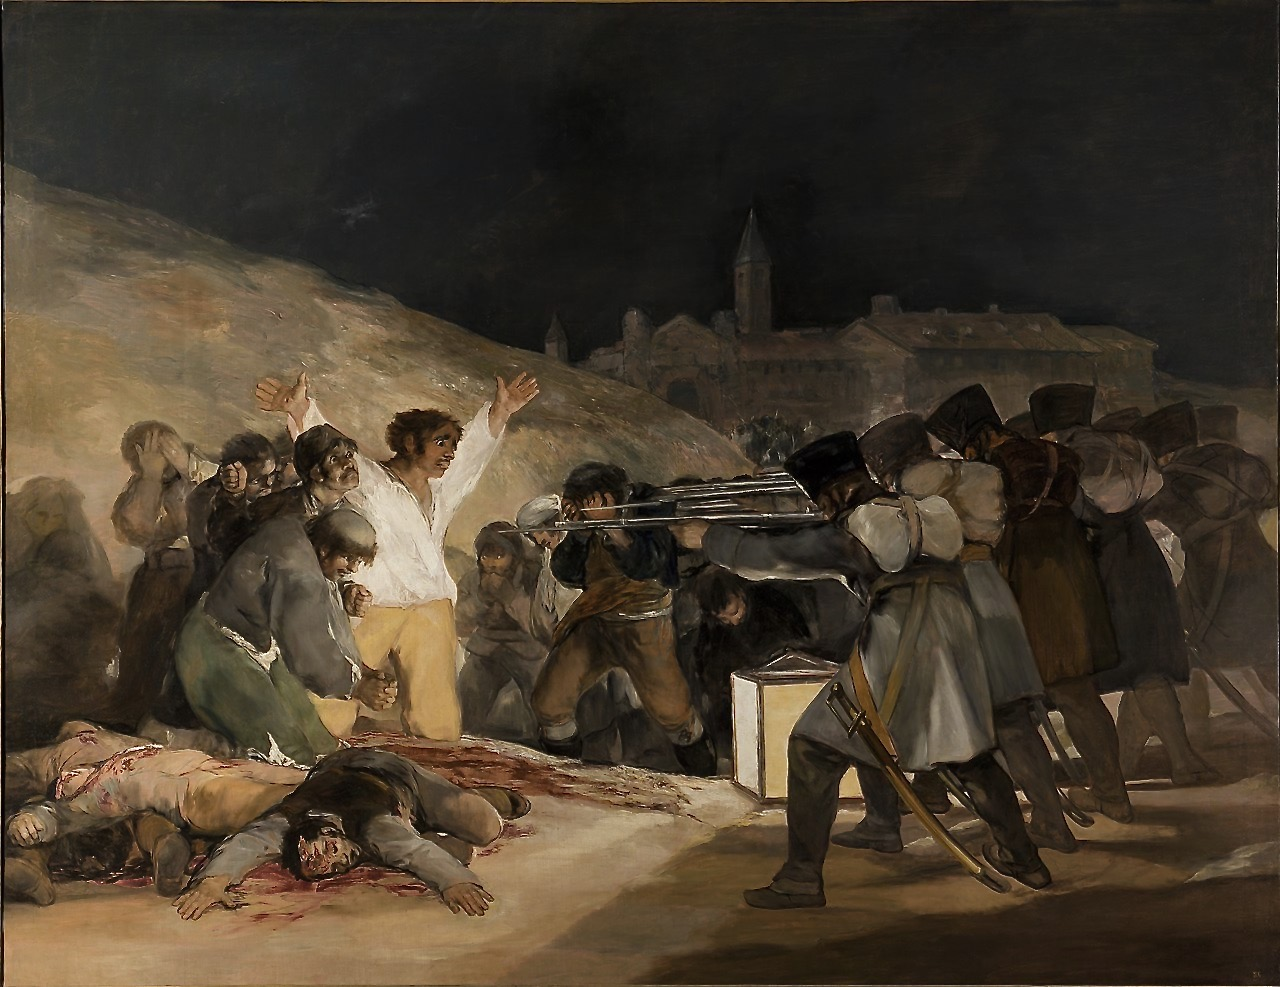 1280px-El_Tres_de_Mayo,_by_Francisco_de_Goya,_from_Prado_in_Google_Earth